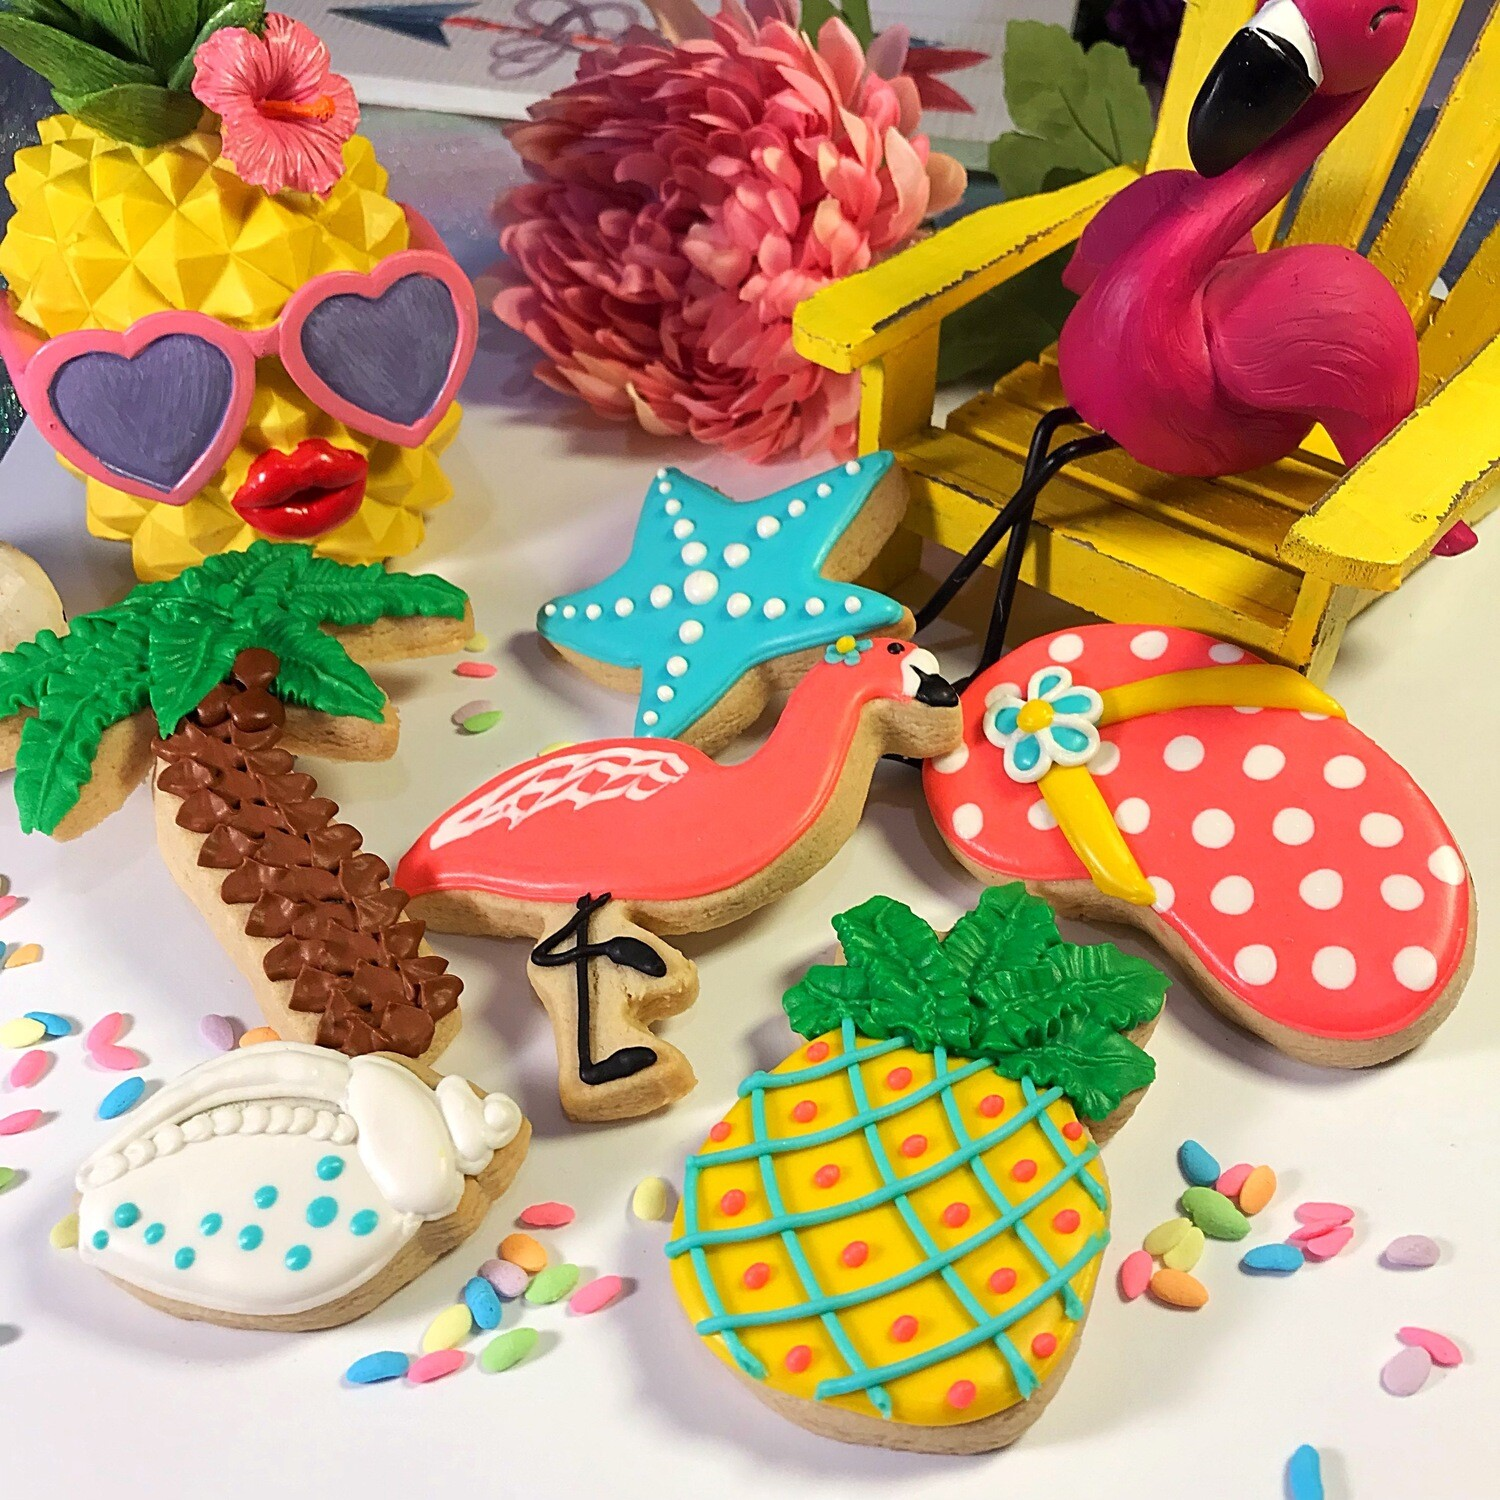 SUMMER TIME Decorating Workshop - SUNDAY, JUNE 23, 2019 at 3:00 p.m. (THE POTPOURRI HOUSE) - CHILD TICKET (Ages 6-12)